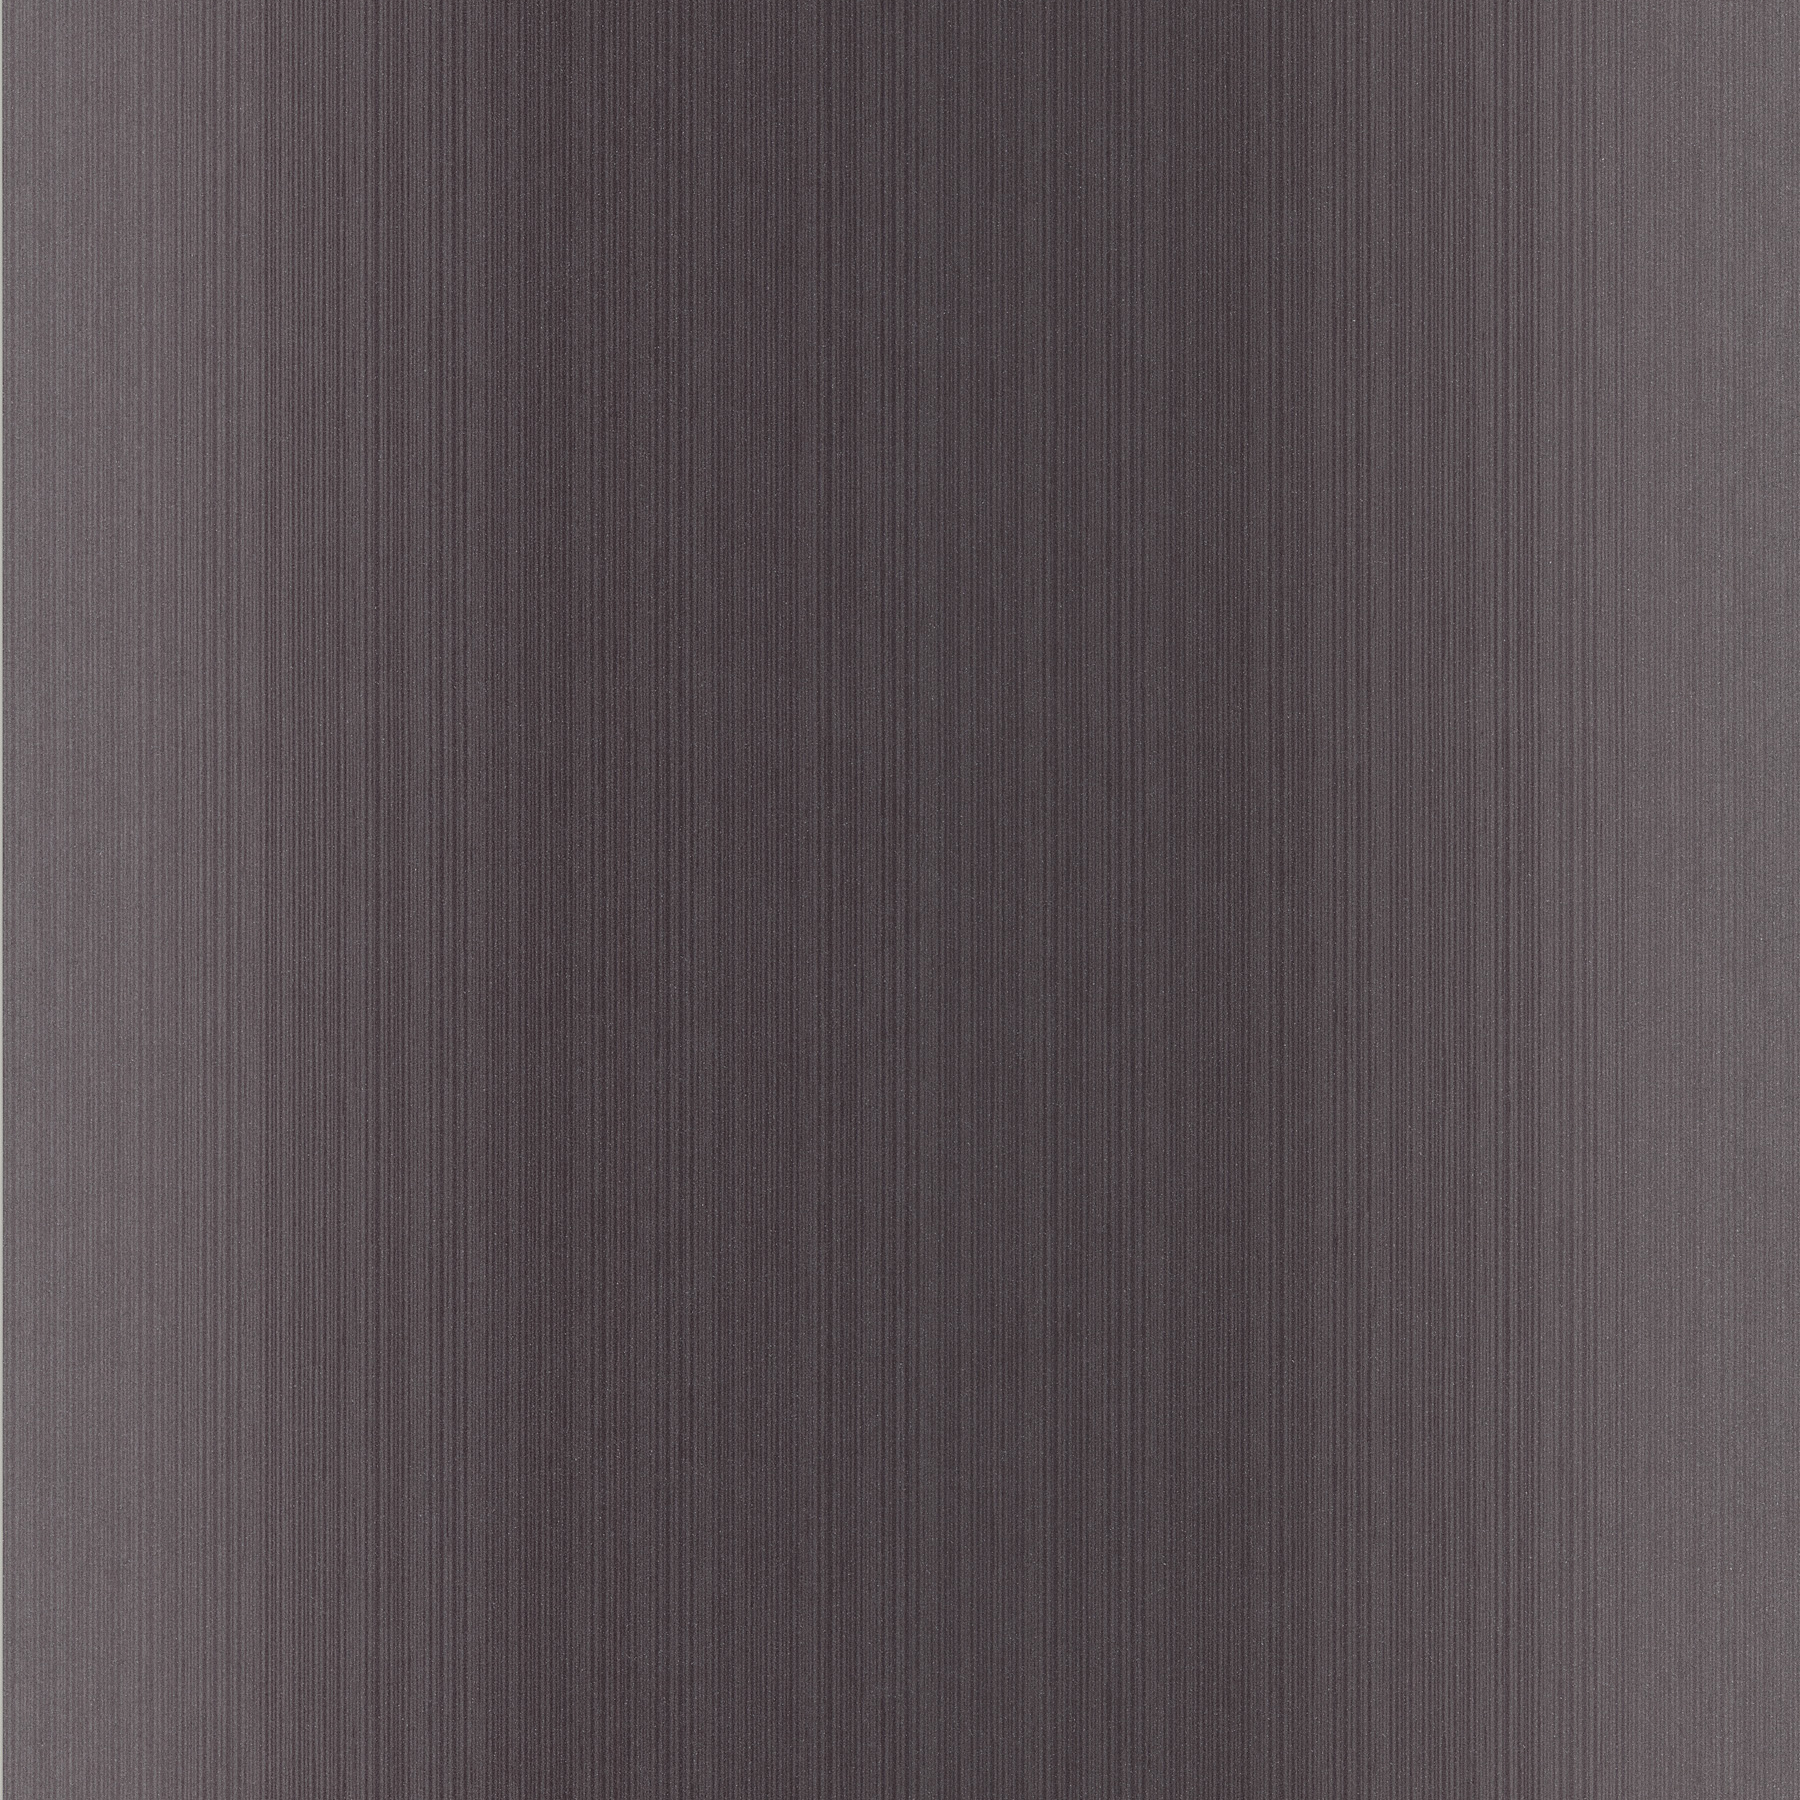 Picture of Blanch Eggplant Ombre Texture Wallpaper